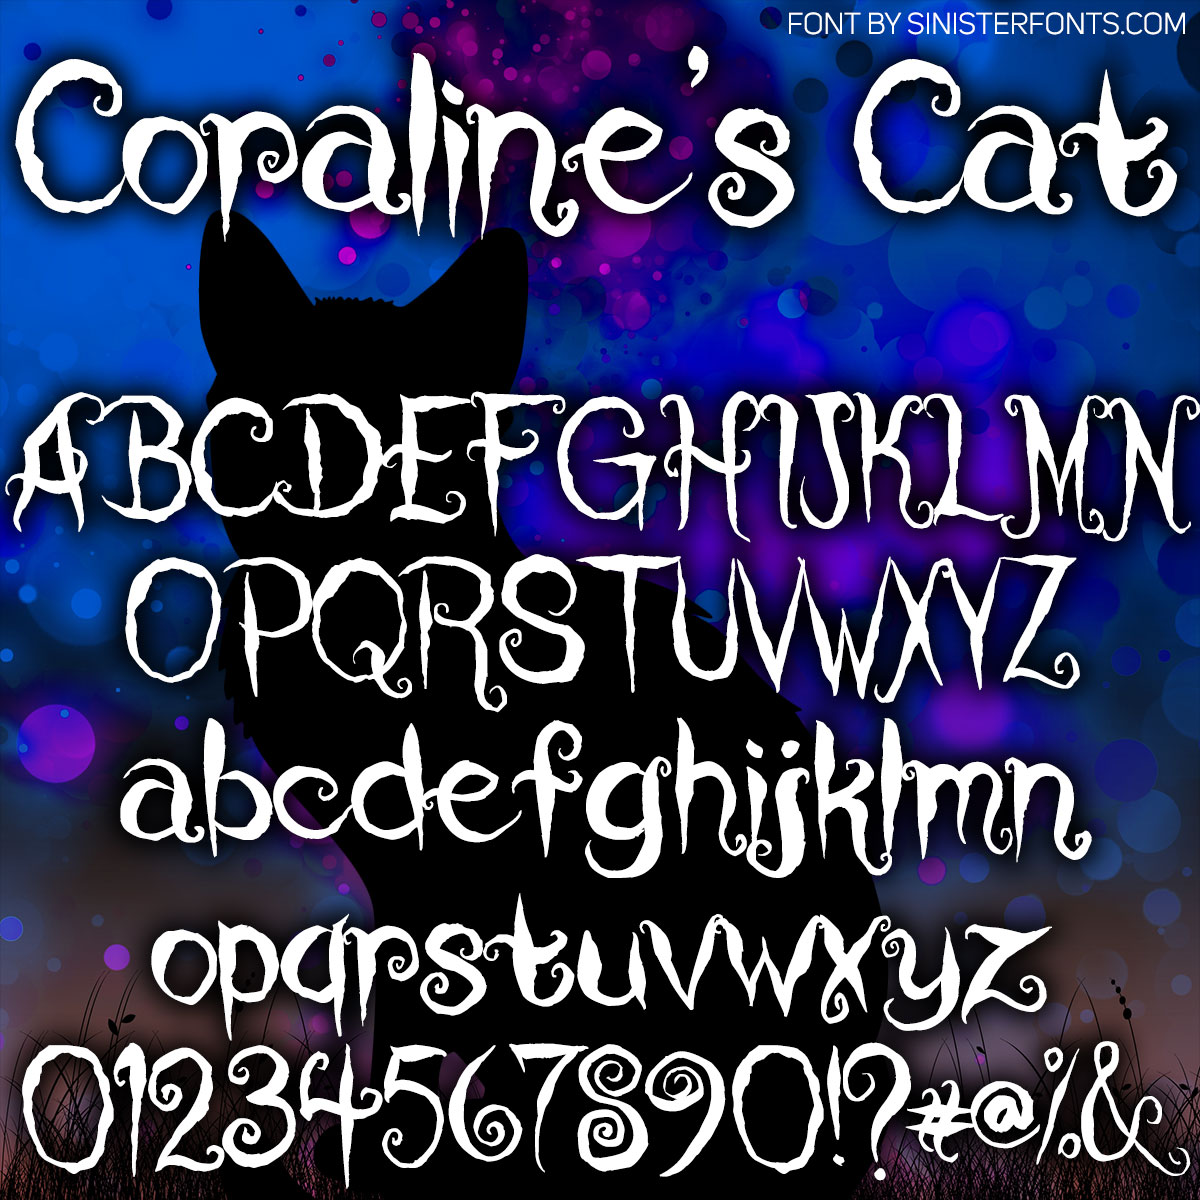 Coraline's Cat Font : Click to Download